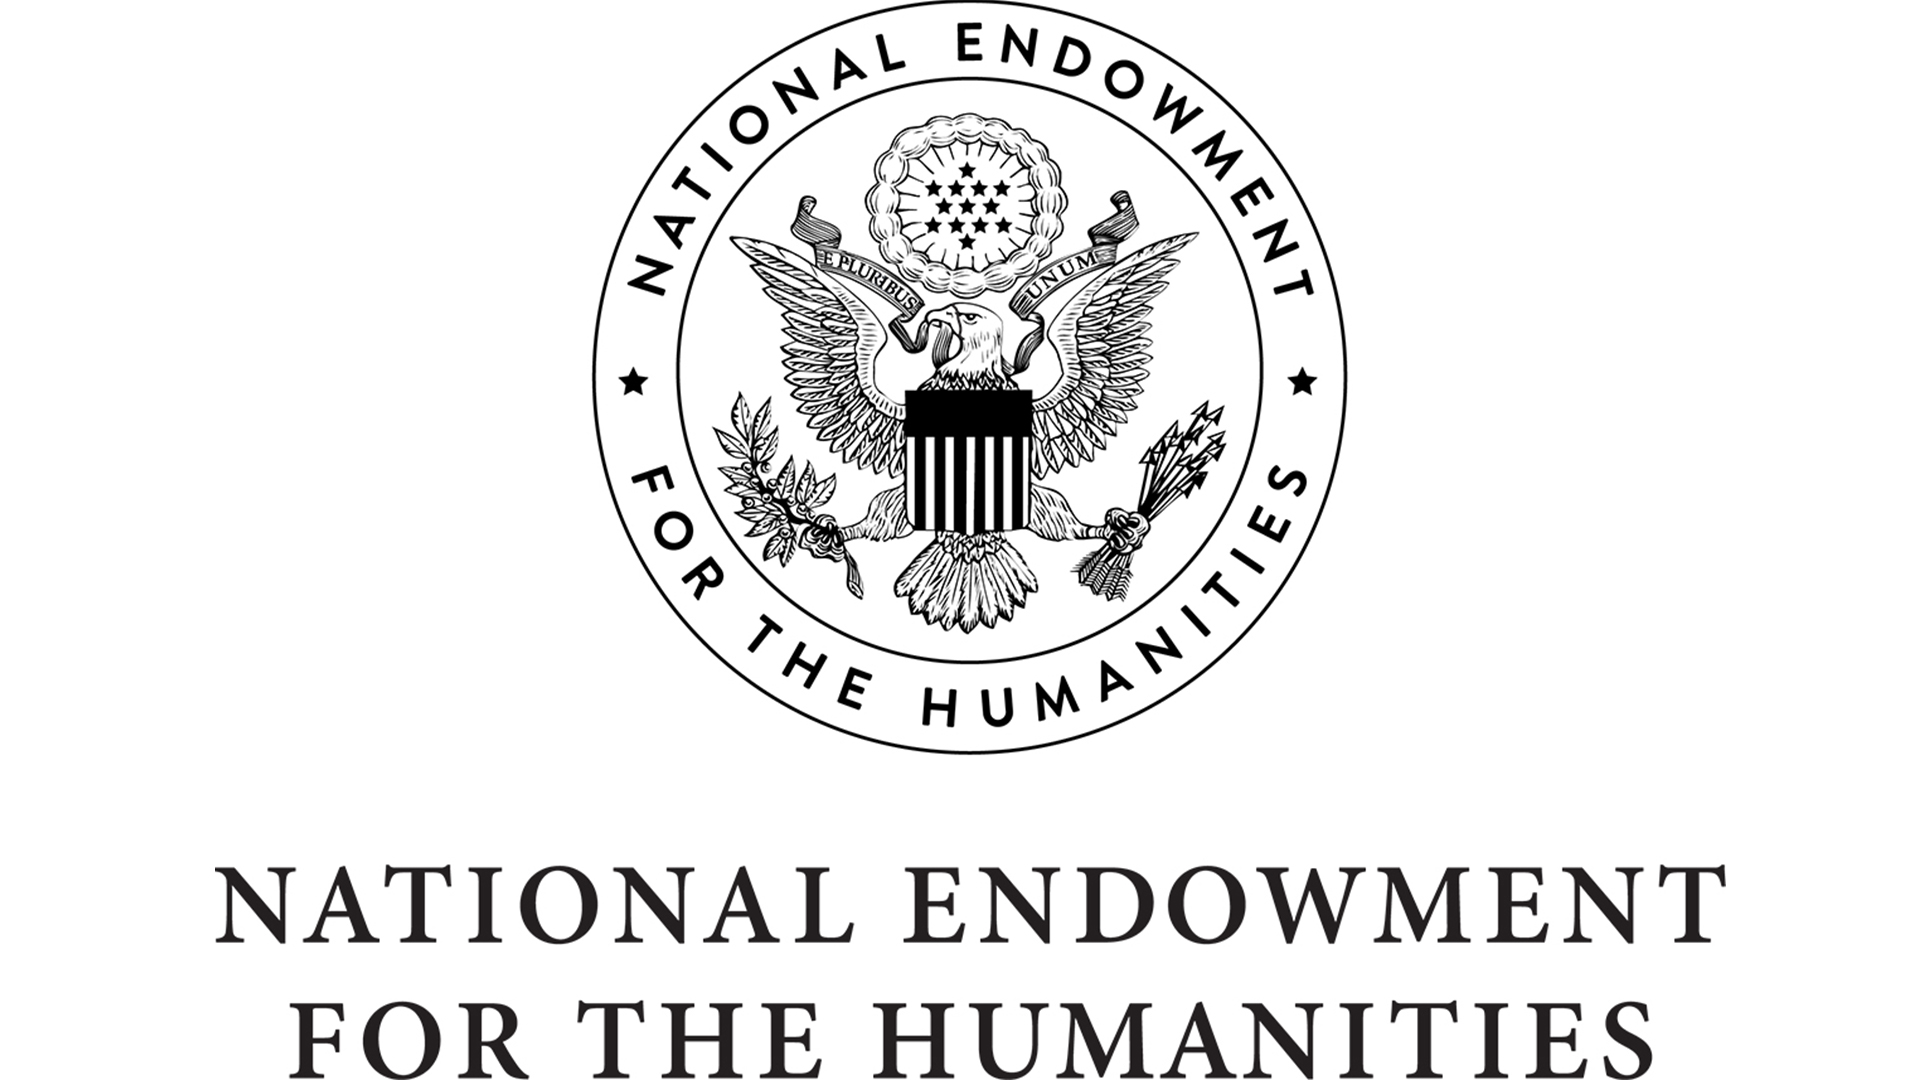 National Endowment for the Humanities_Sponsor_1920x1080